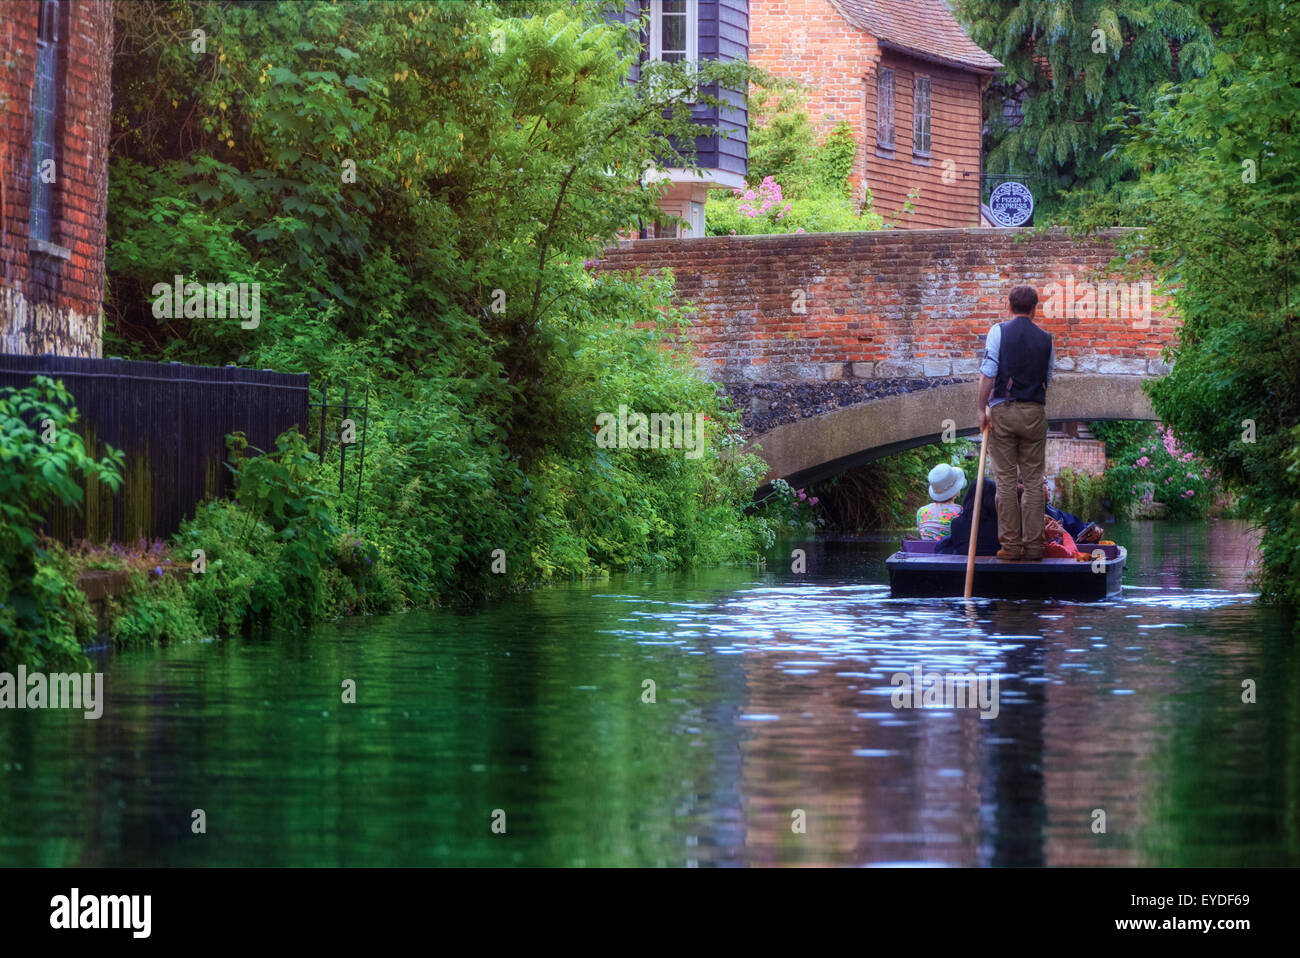 Canterbury, Stour, Kent, England, United Kingdom - Stock Image